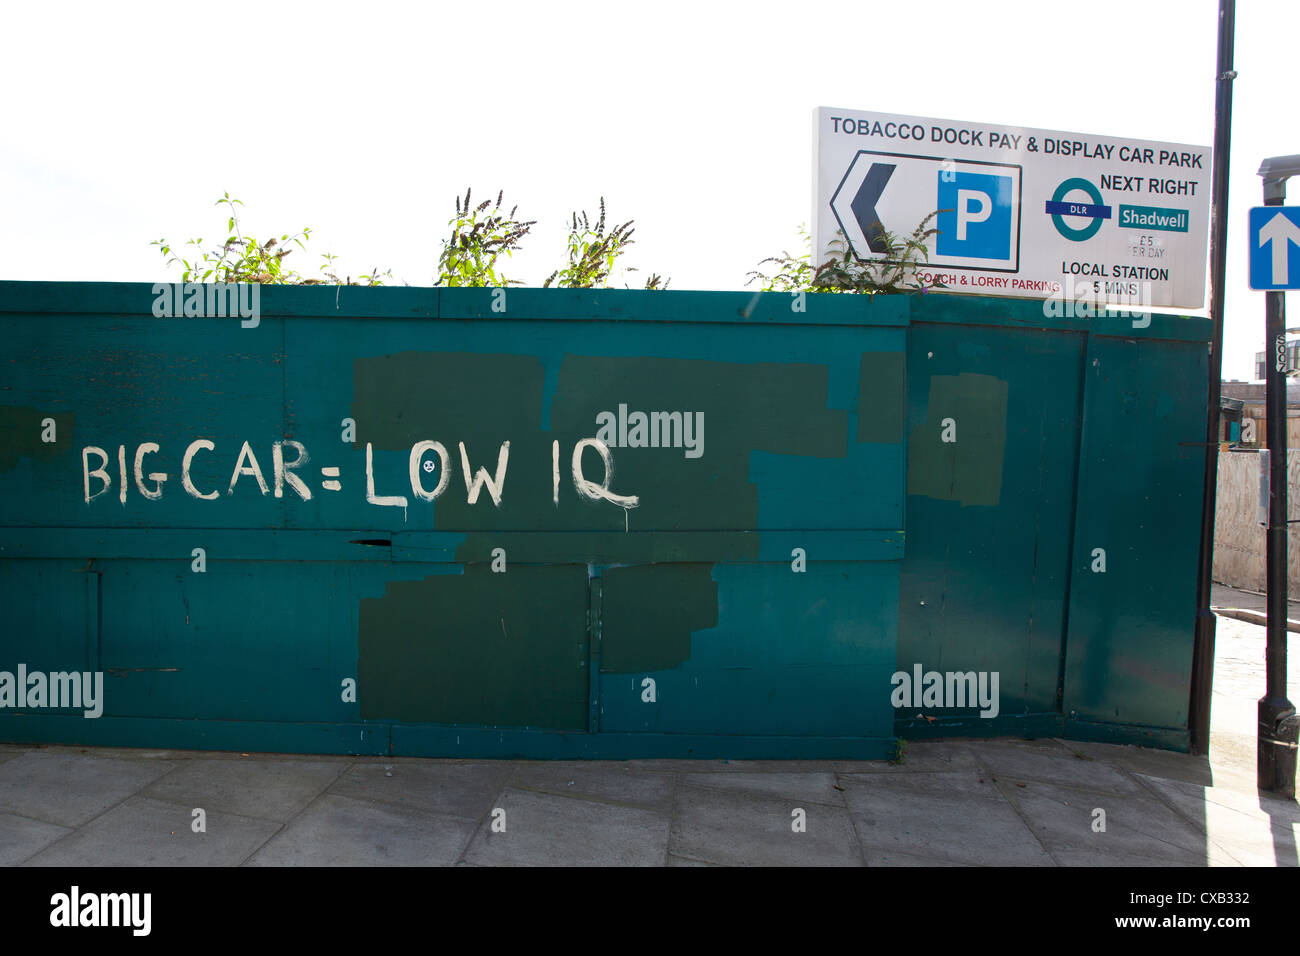 BIG CAR = LOW IQ painted on wooden boards, The Highway, Wapping, London, England, UK. - Stock Image